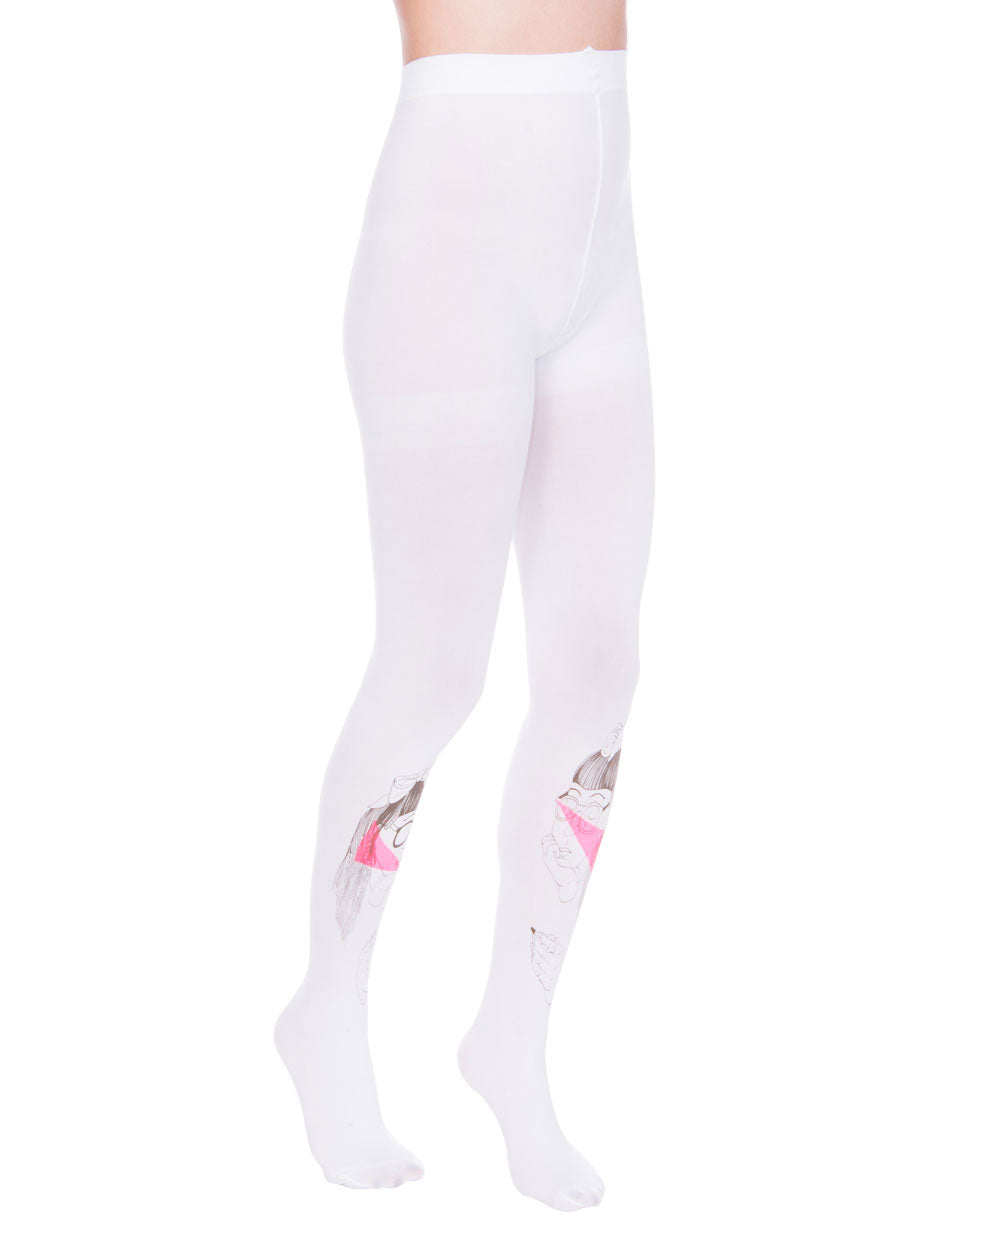 GIRLS WHITE TIGHTS - Eros Mortis